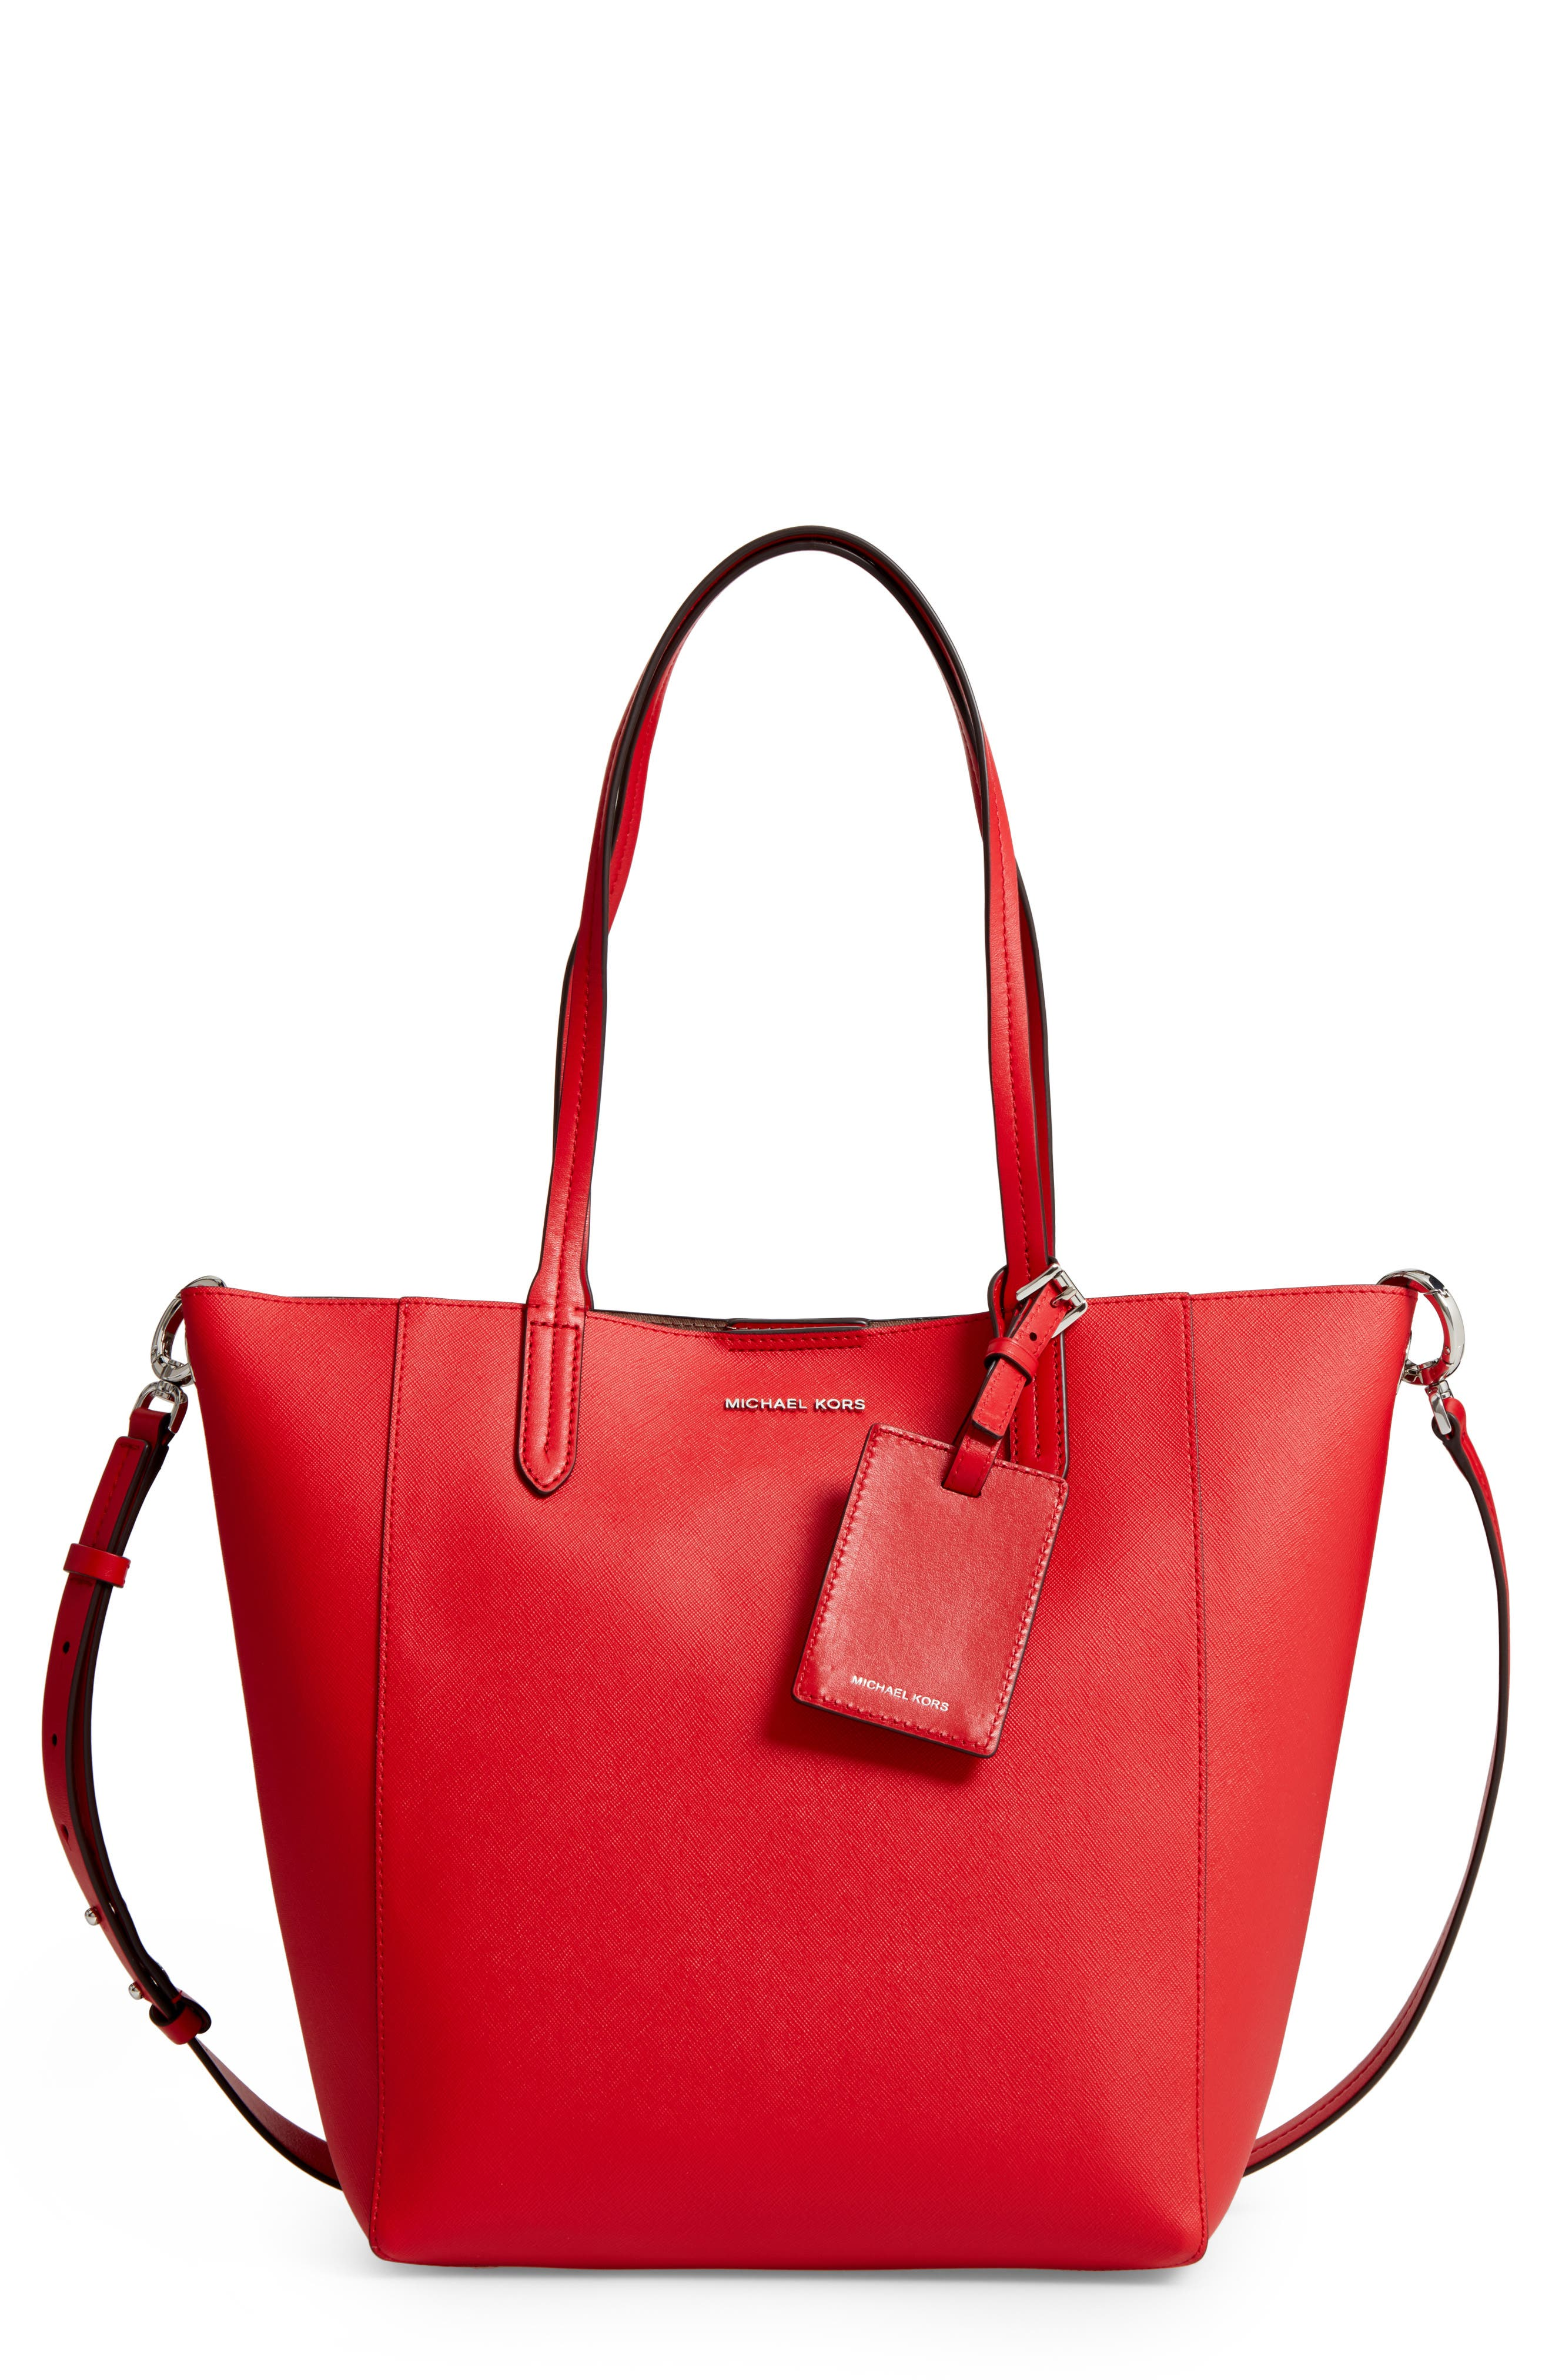 Penny Large Saffiano Convertible Leather Tote,                         Main,                         color, Bright Red